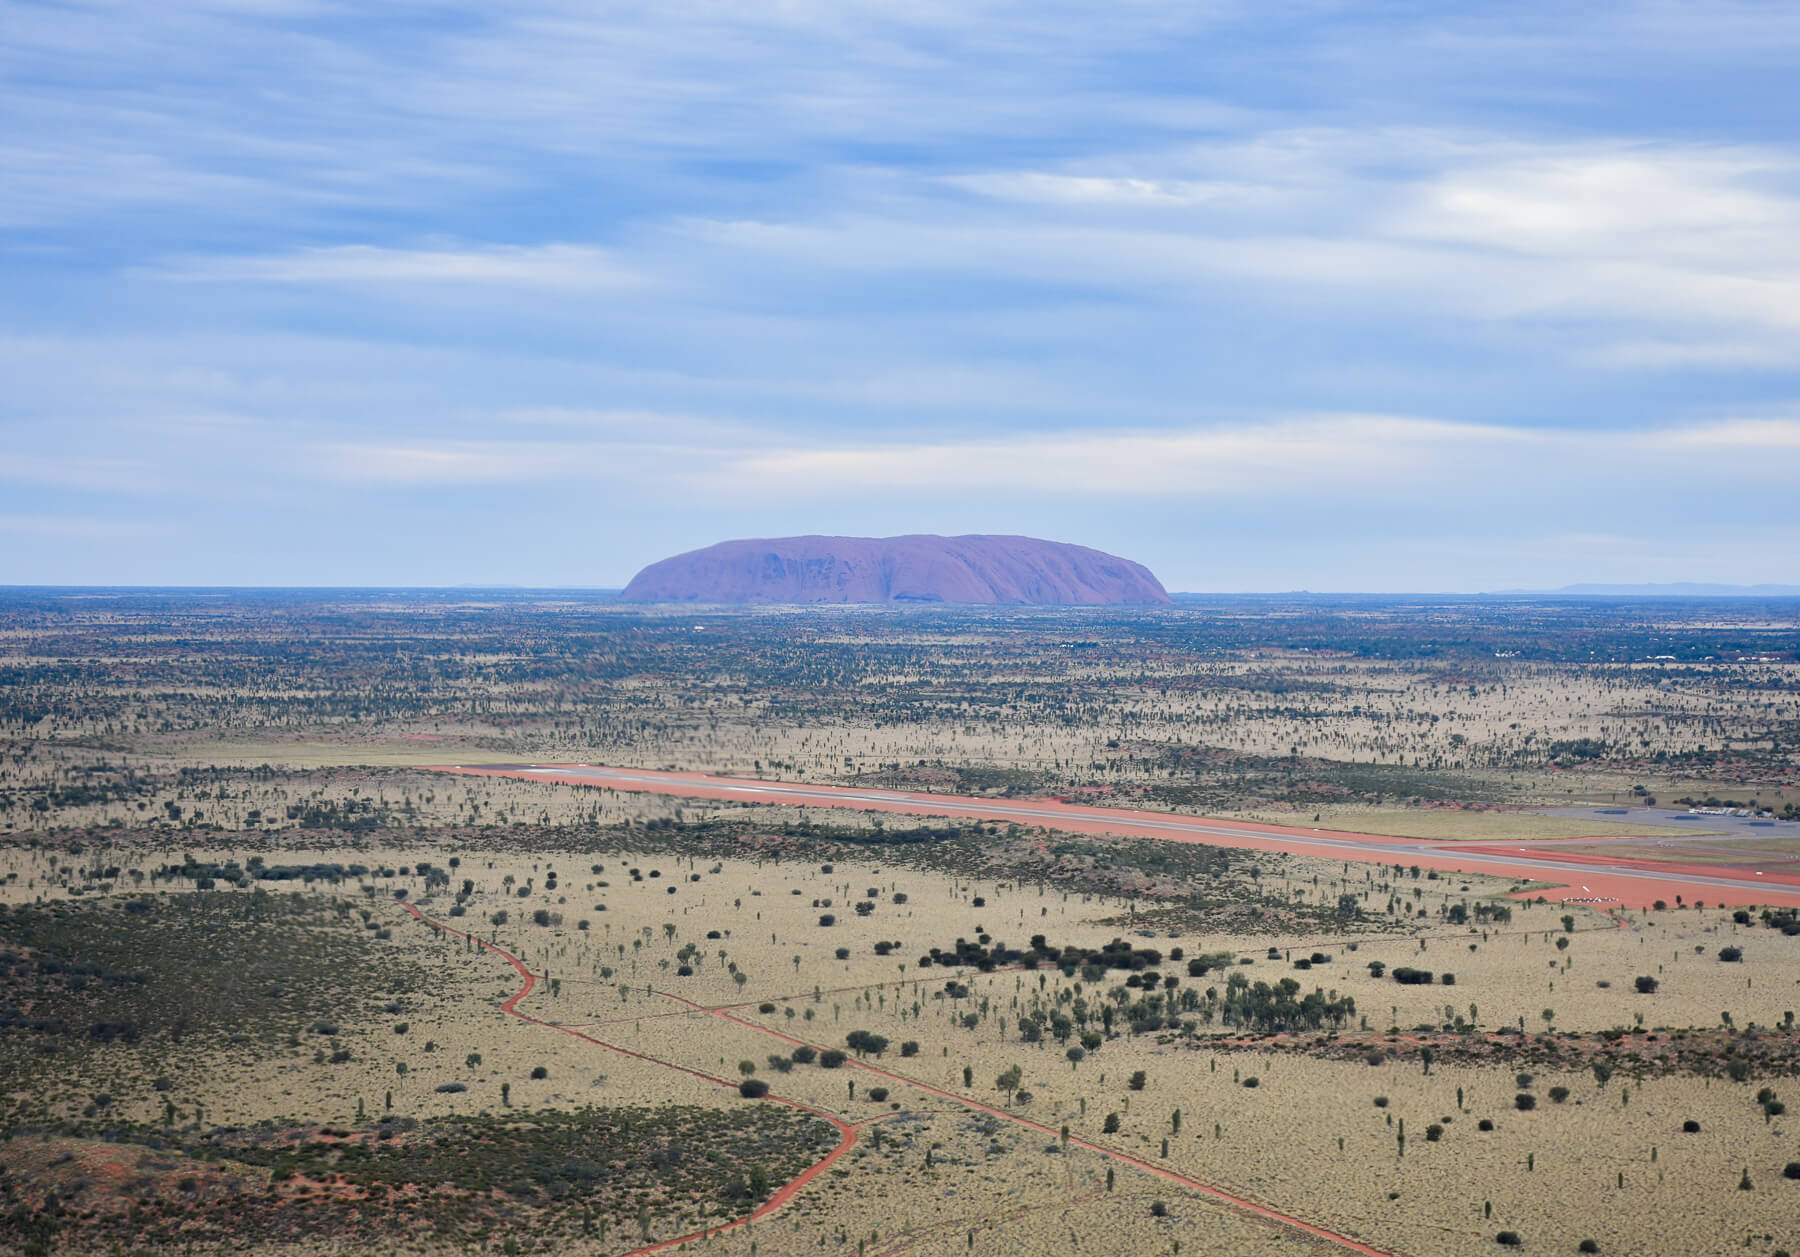 Ayers rock in the distance surrounded by flat grounds - Airport runway in the foreground